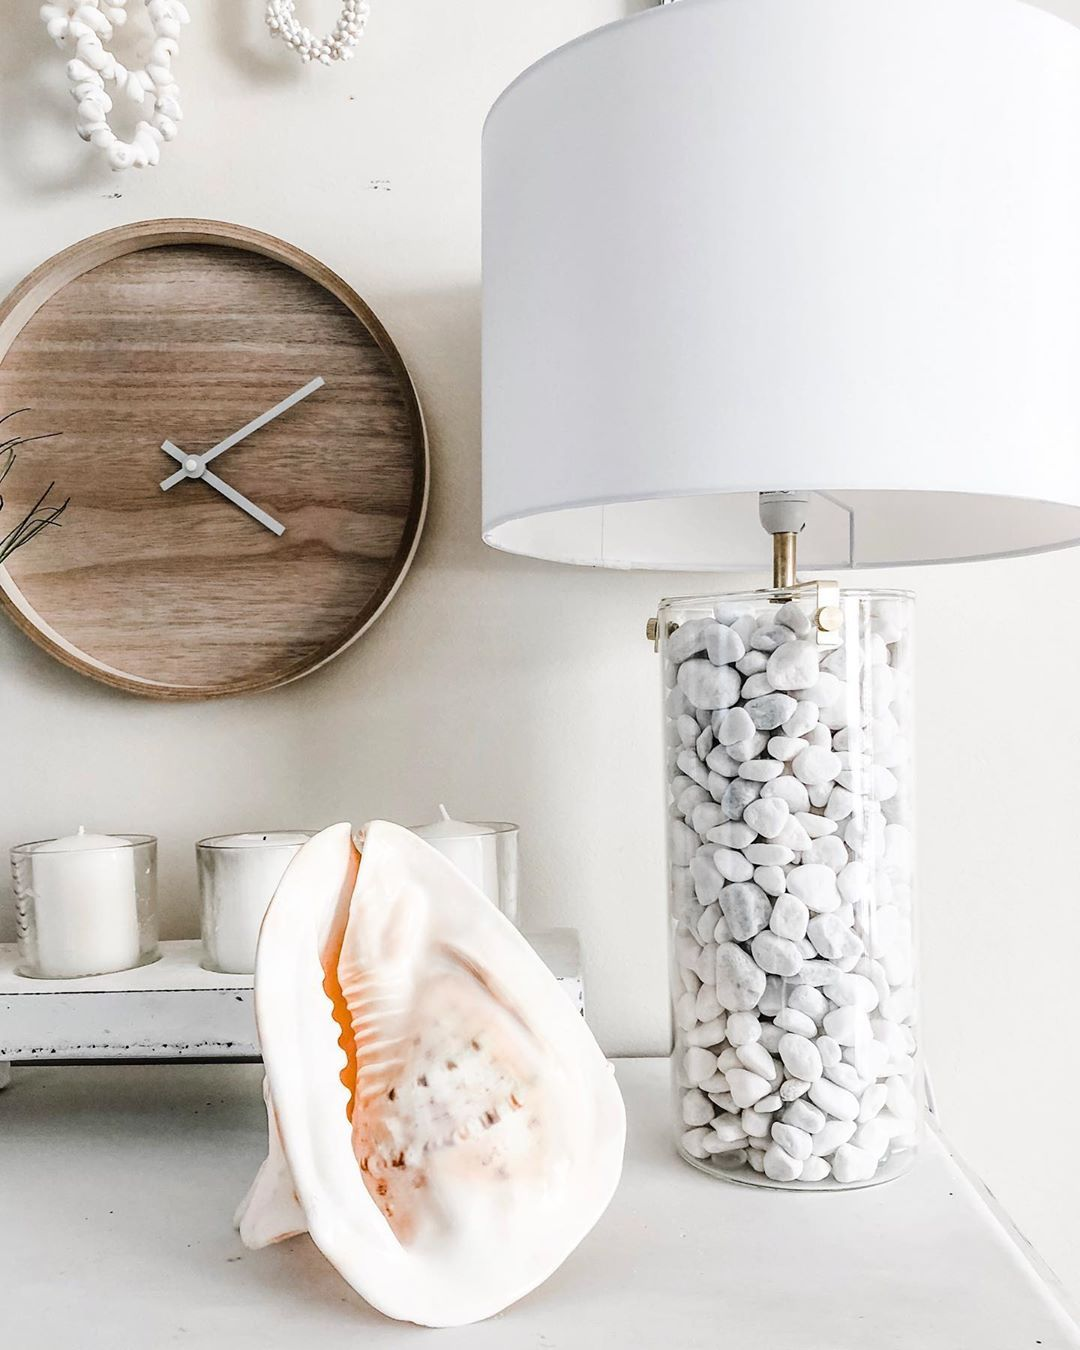 11 Genius Kmart Hacks You Have To Try In 2020 Kmart Decor Decor Decorating Tips